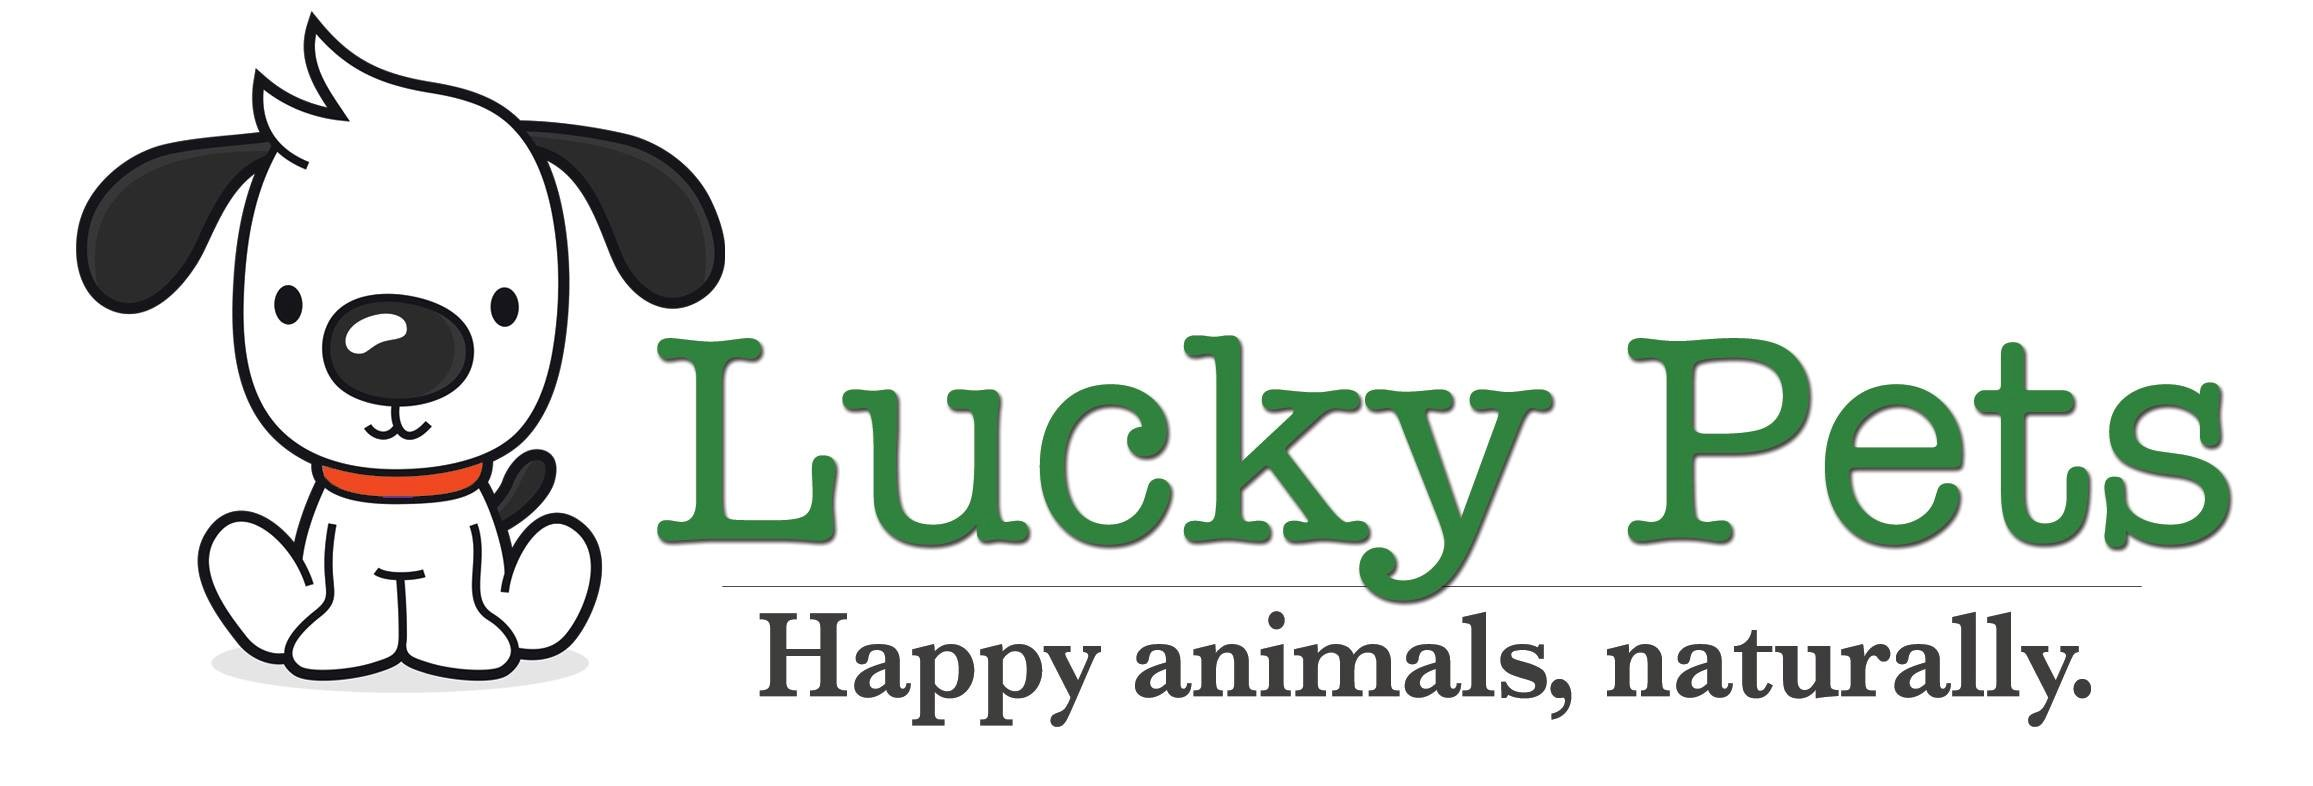 Lucky Pets